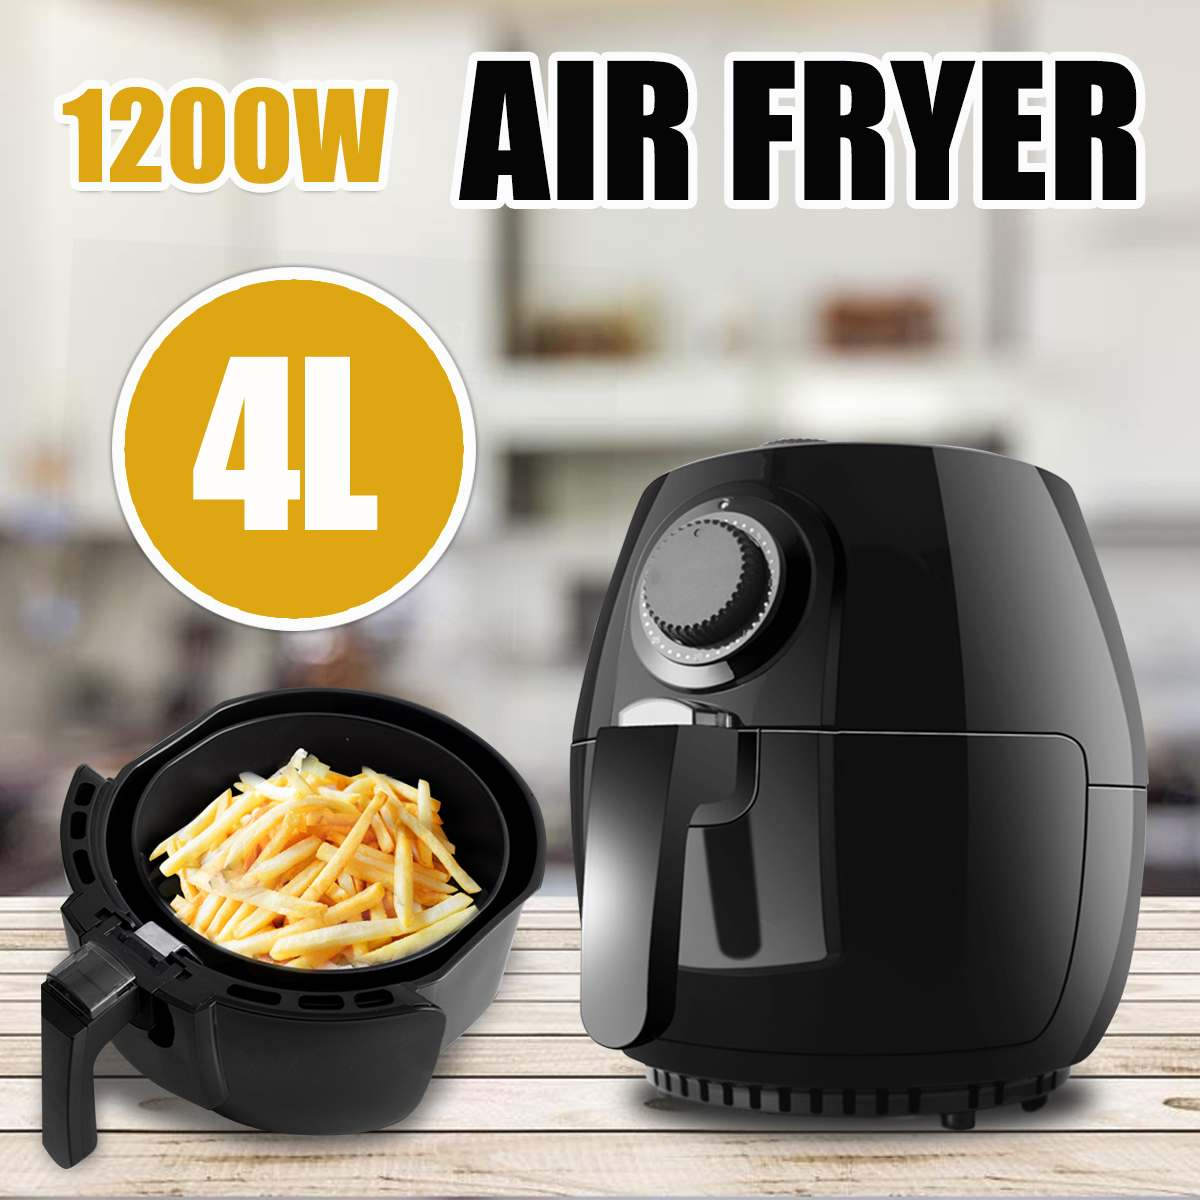 4L 1200W Electric Air Fryer Household Intelligent French Fries Oilless Heathly Cooker French Fried No Oil Fryer4L 1200W Electric Air Fryer Household Intelligent French Fries Oilless Heathly Cooker French Fried No Oil Fryer